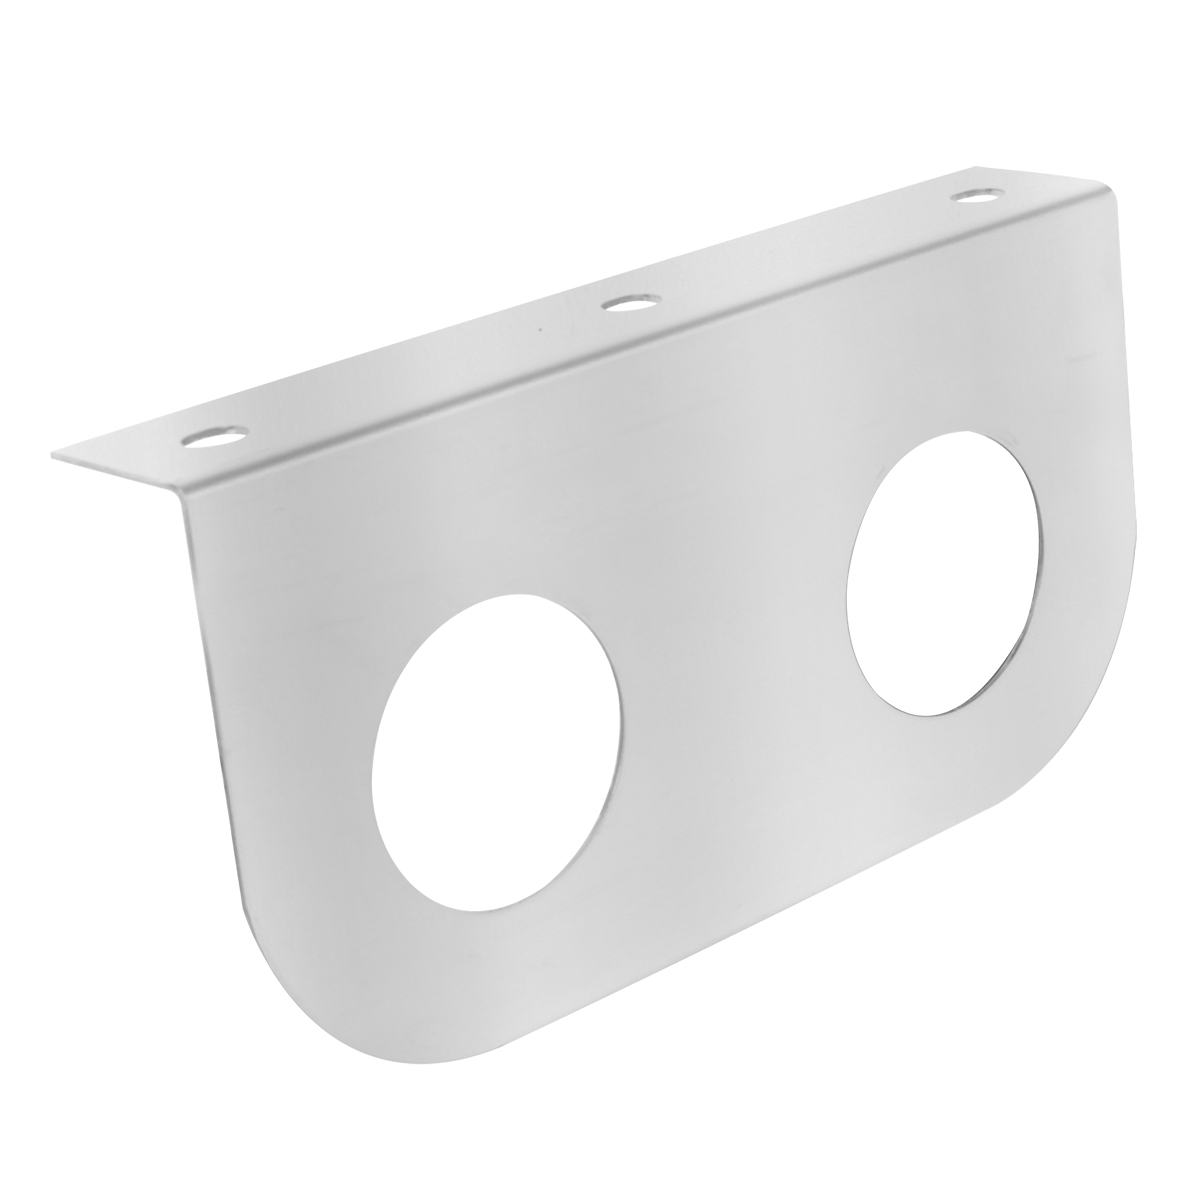 #81450 Chrome Plated Steel Mounting Bracket Only